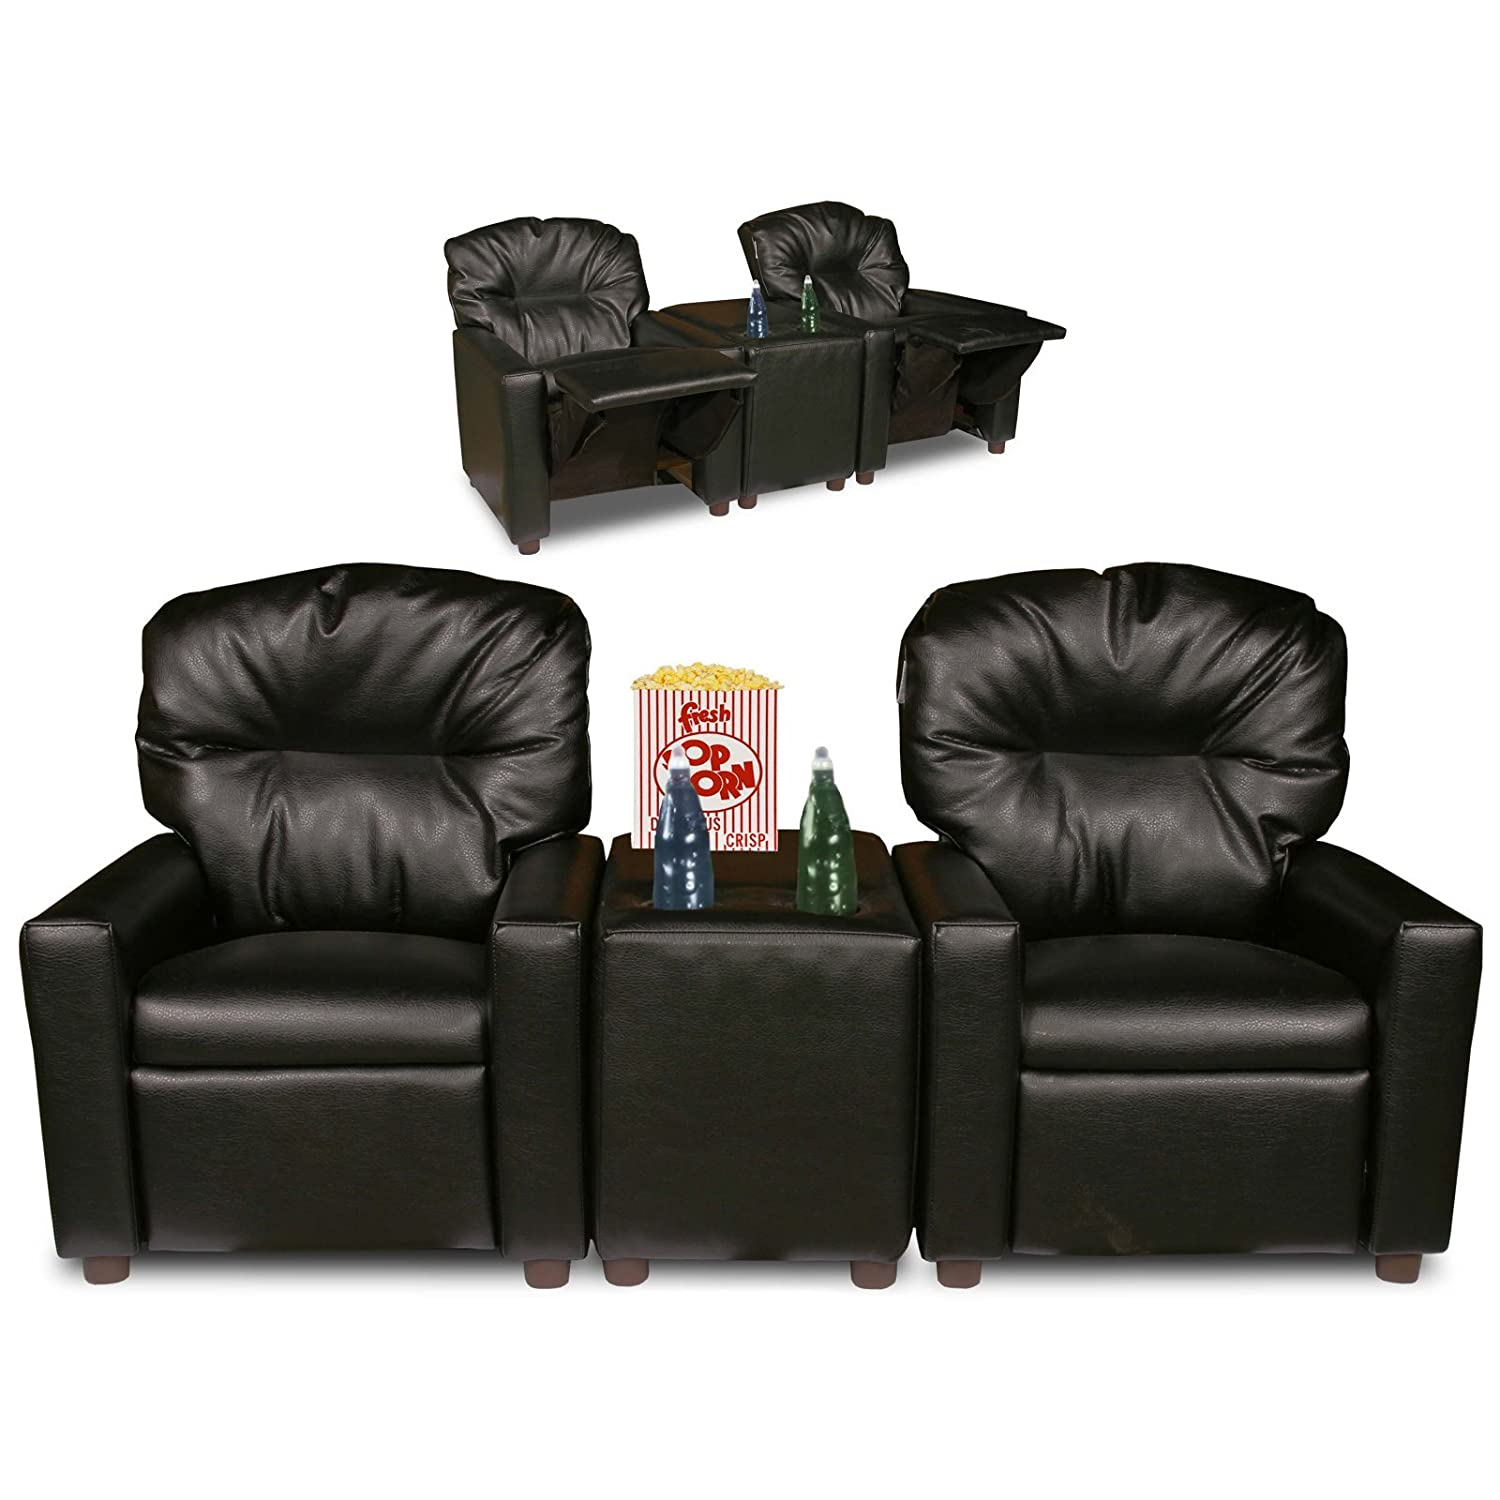 Amazon.com Dozydotes Kids 2 Seat Theater Seating Recliner Kitchen \u0026 Dining  sc 1 st  Amazon.com & Amazon.com: Dozydotes Kids 2 Seat Theater Seating Recliner ... islam-shia.org